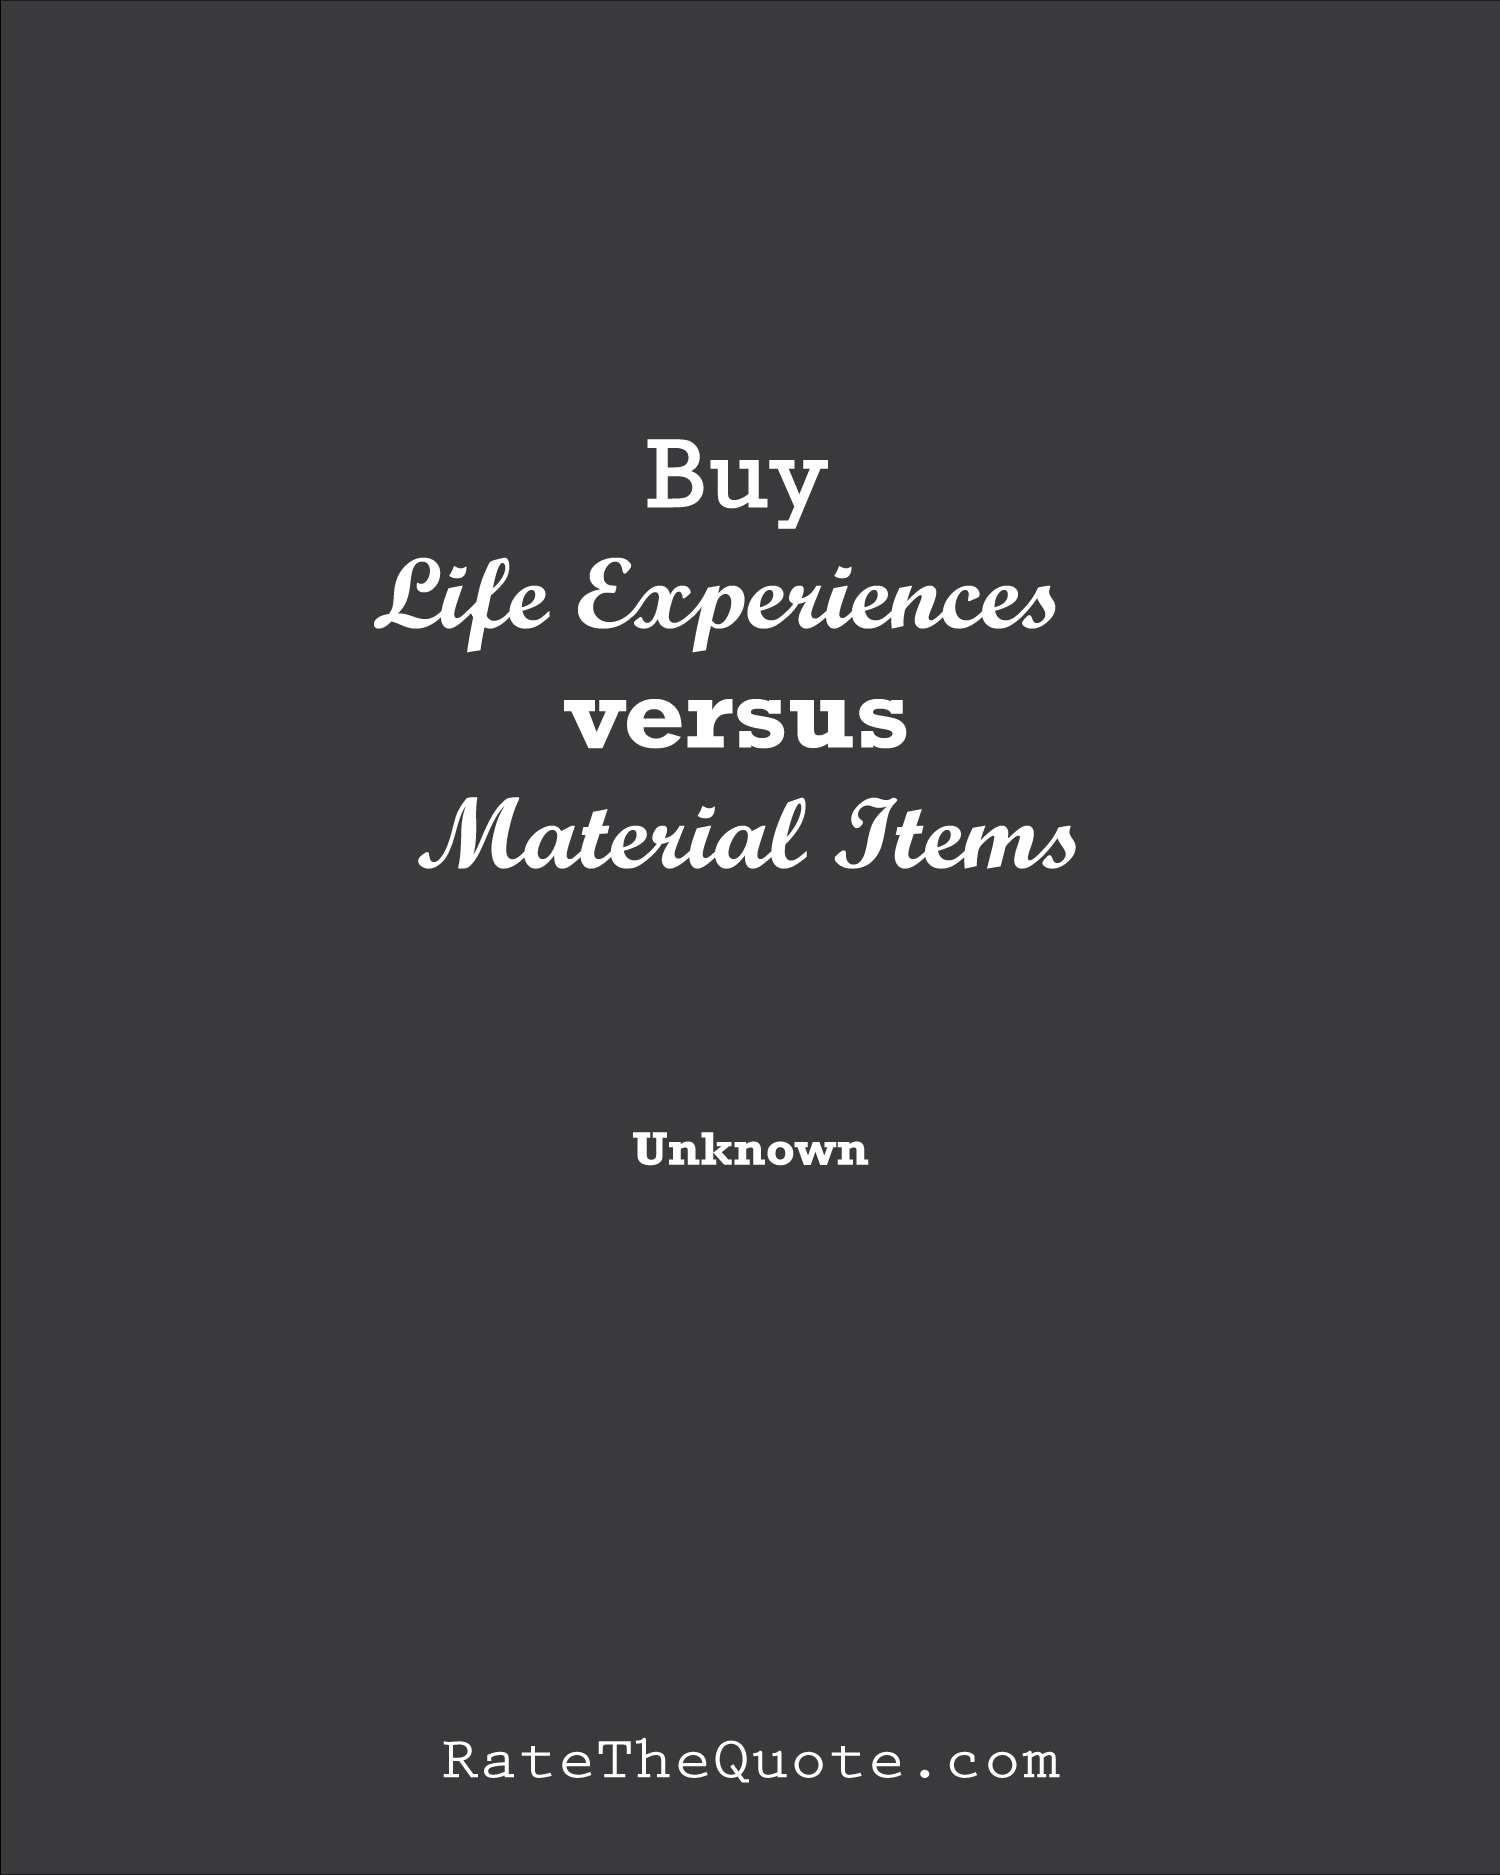 Quote Buy Life Experiences versus Material Items